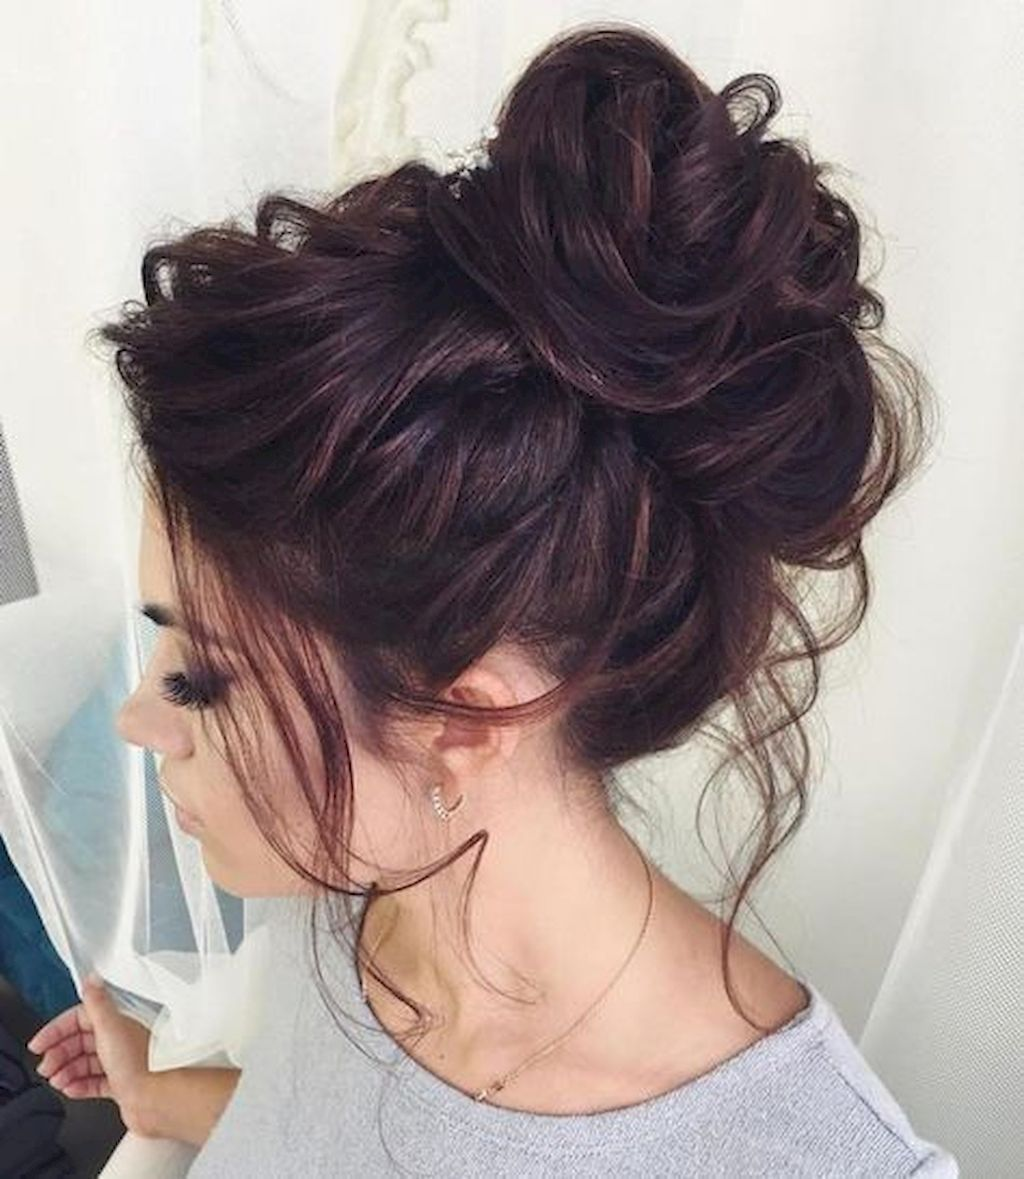 4 Cute and Easy Messy Bun Hairstyle Ideas for Summer in 4